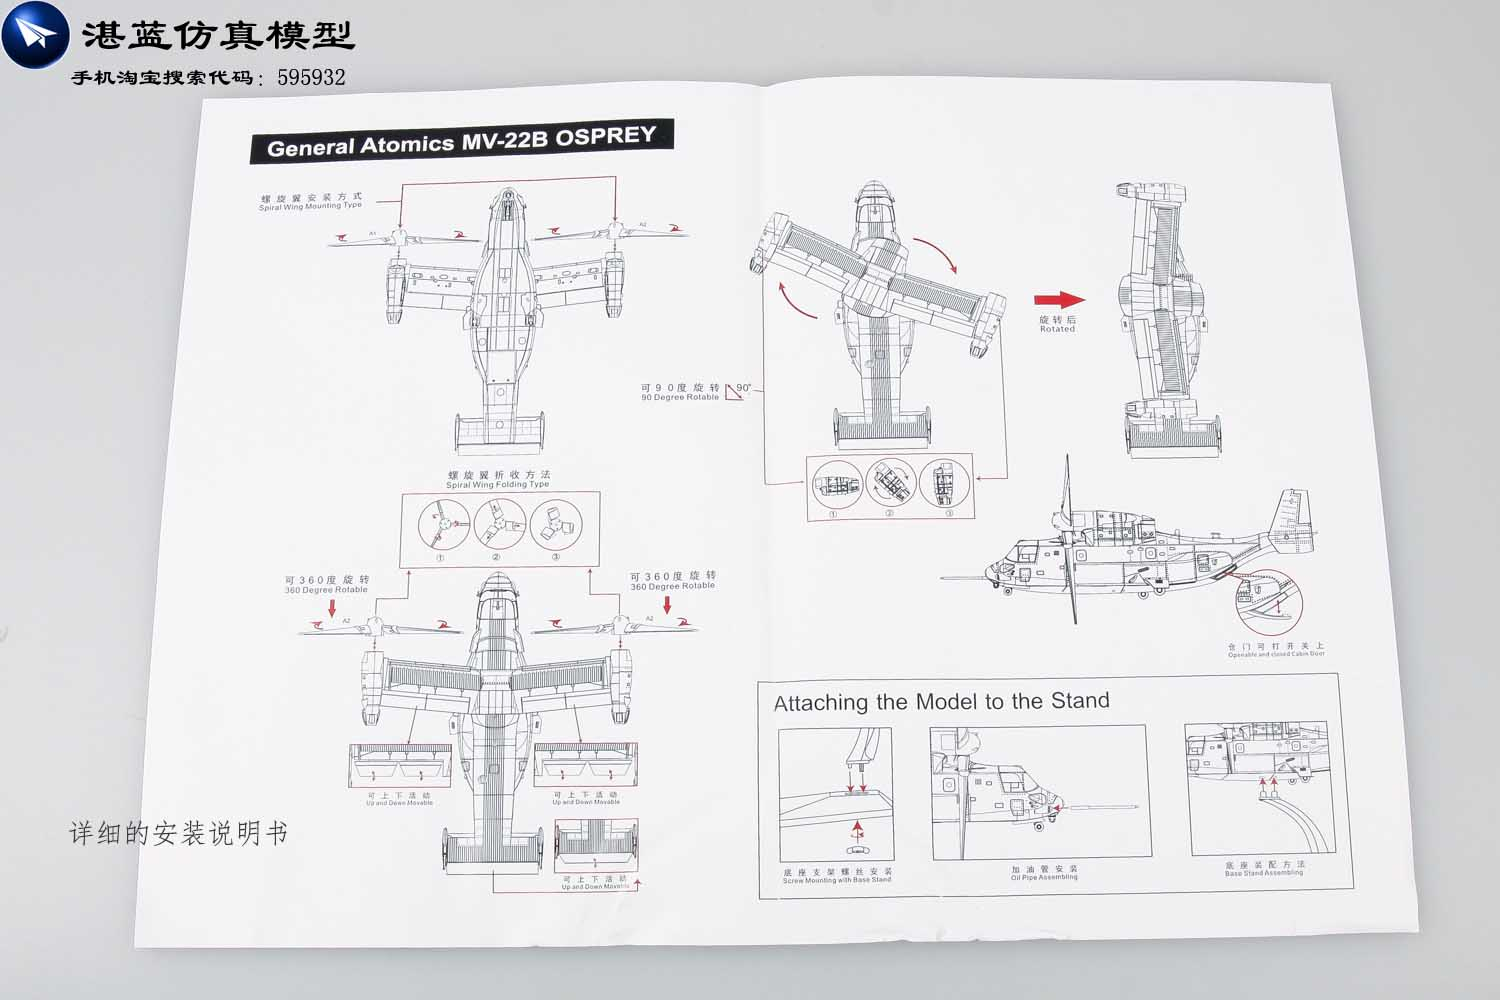 Yj 1 72 Scale Helicopter Model Toys Mv 22 Osprey Diecast Metal Plane Engine Diagram Describe Loading